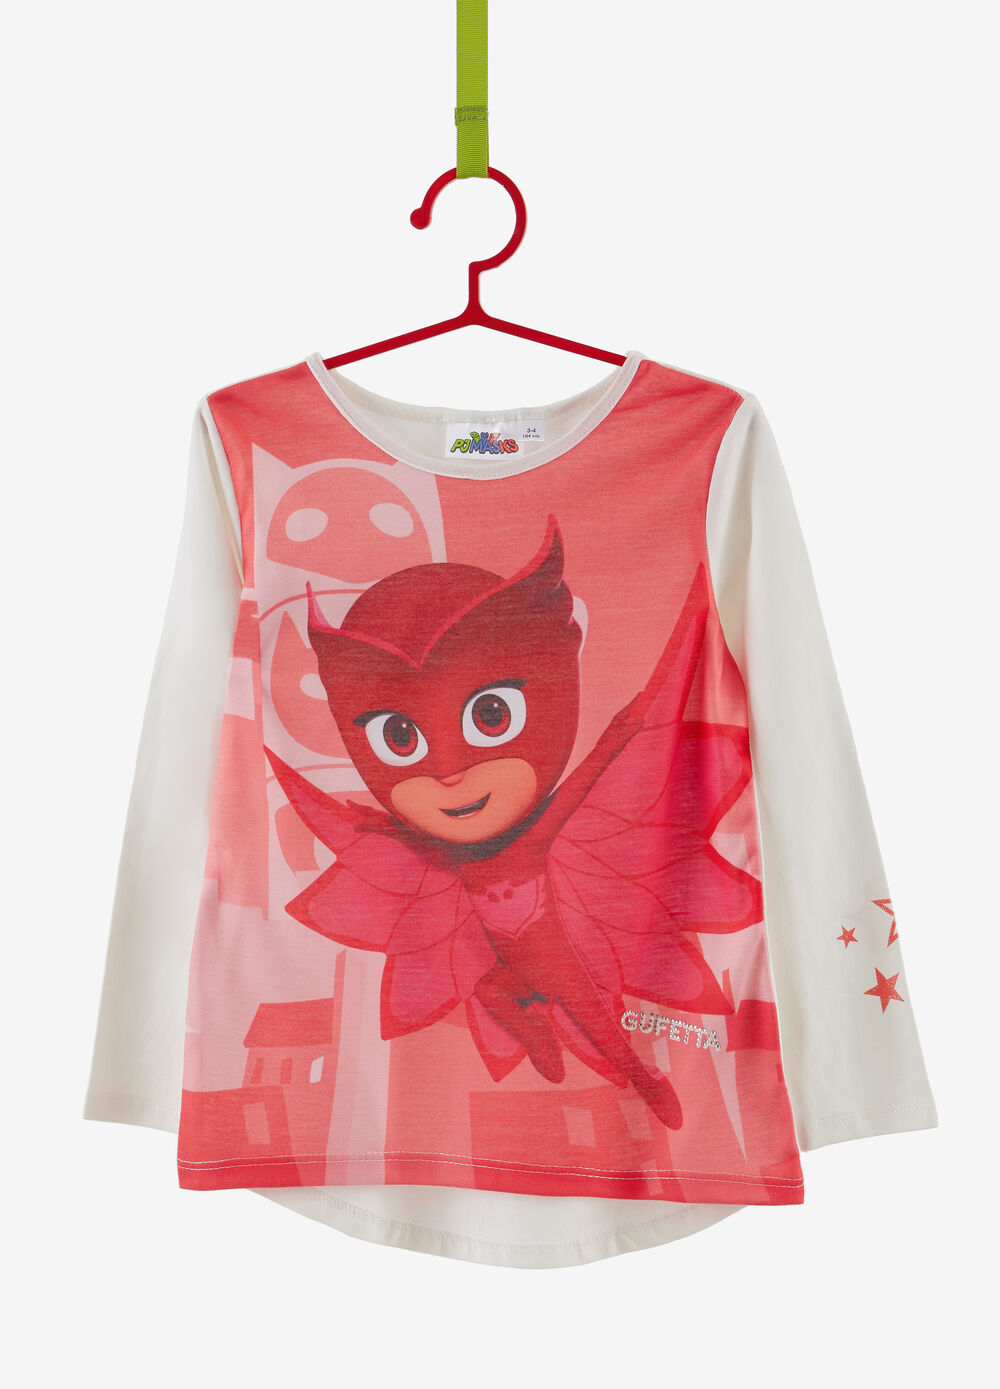 T-shirt with PJ Masks print and long sleeves